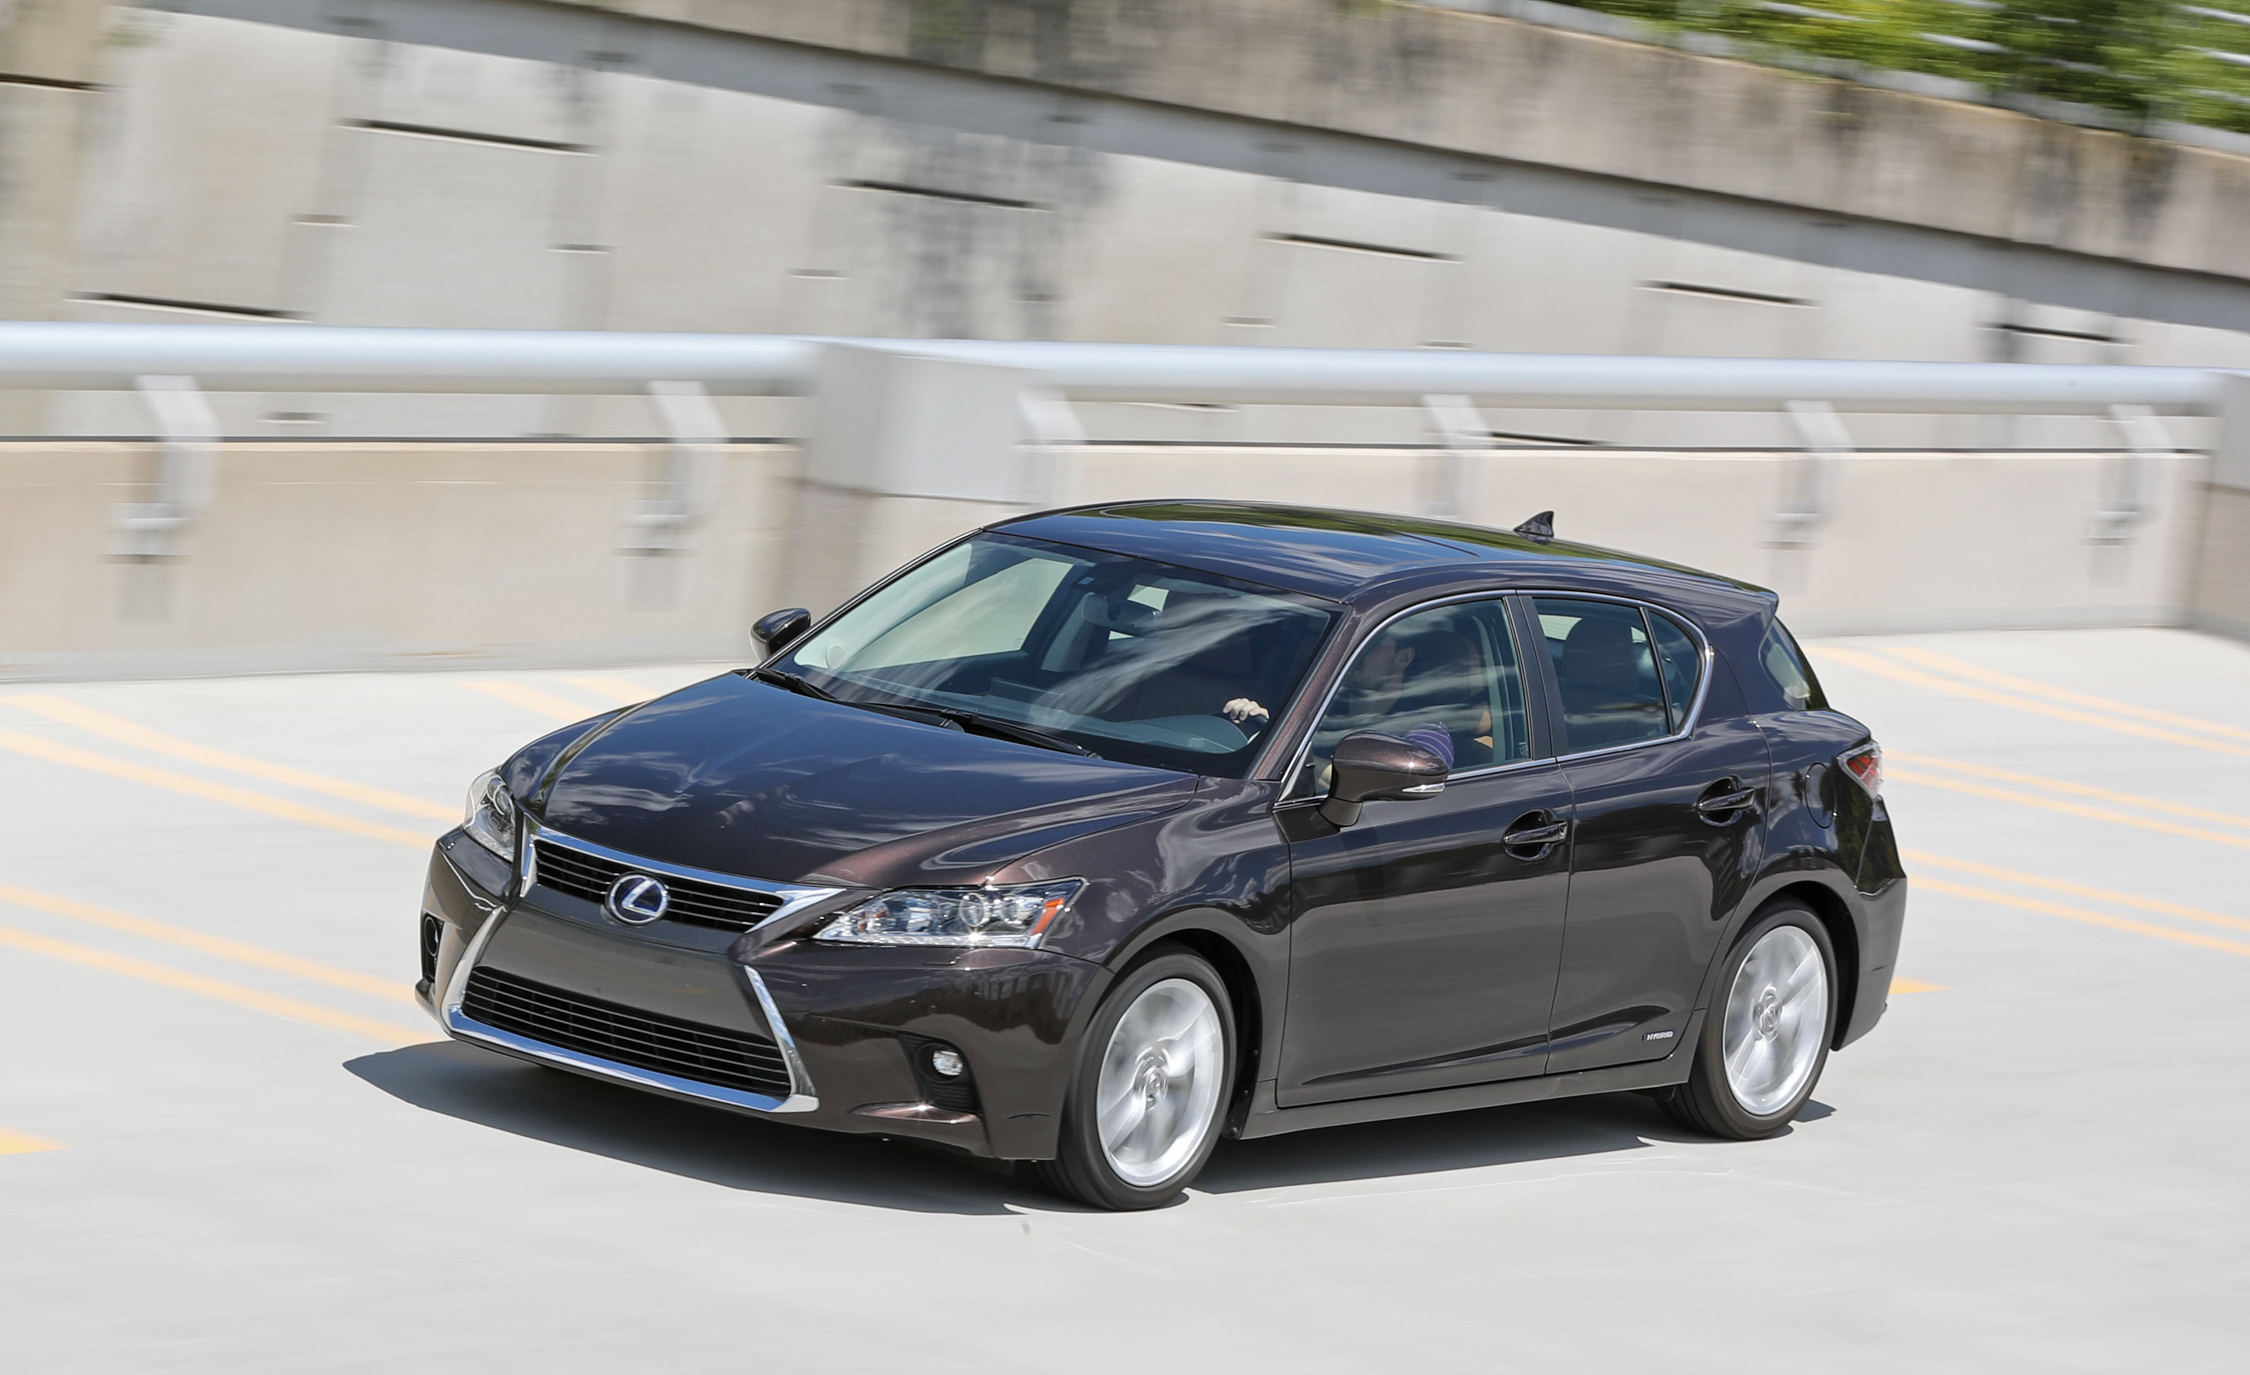 2016 Lexus CT200h (View 17 of 29)